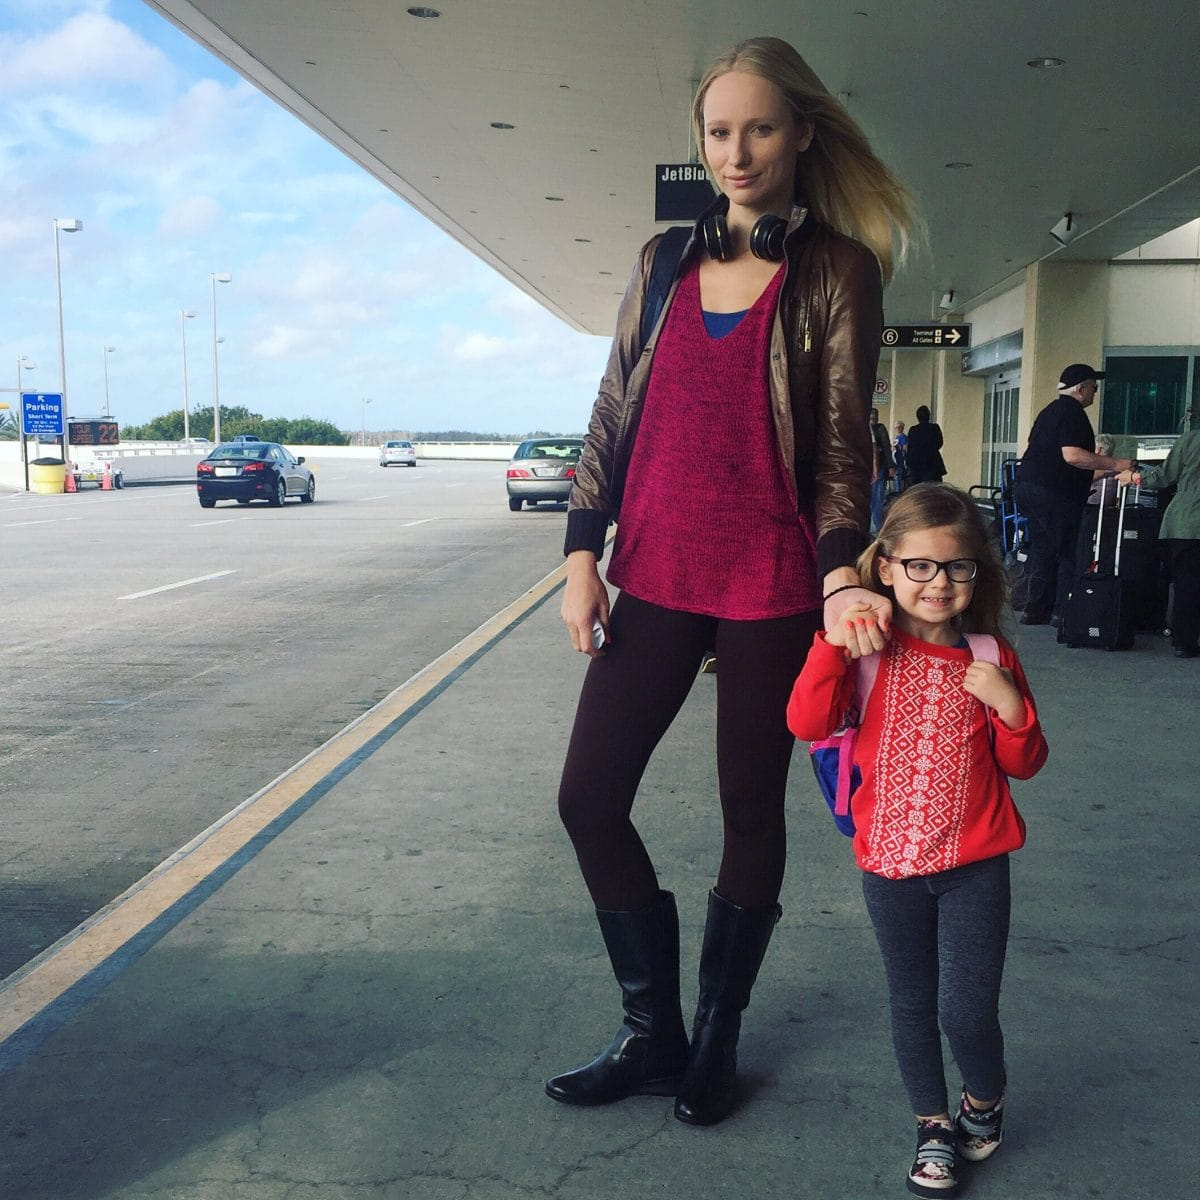 Breastfeeding a 4 year old at the airport